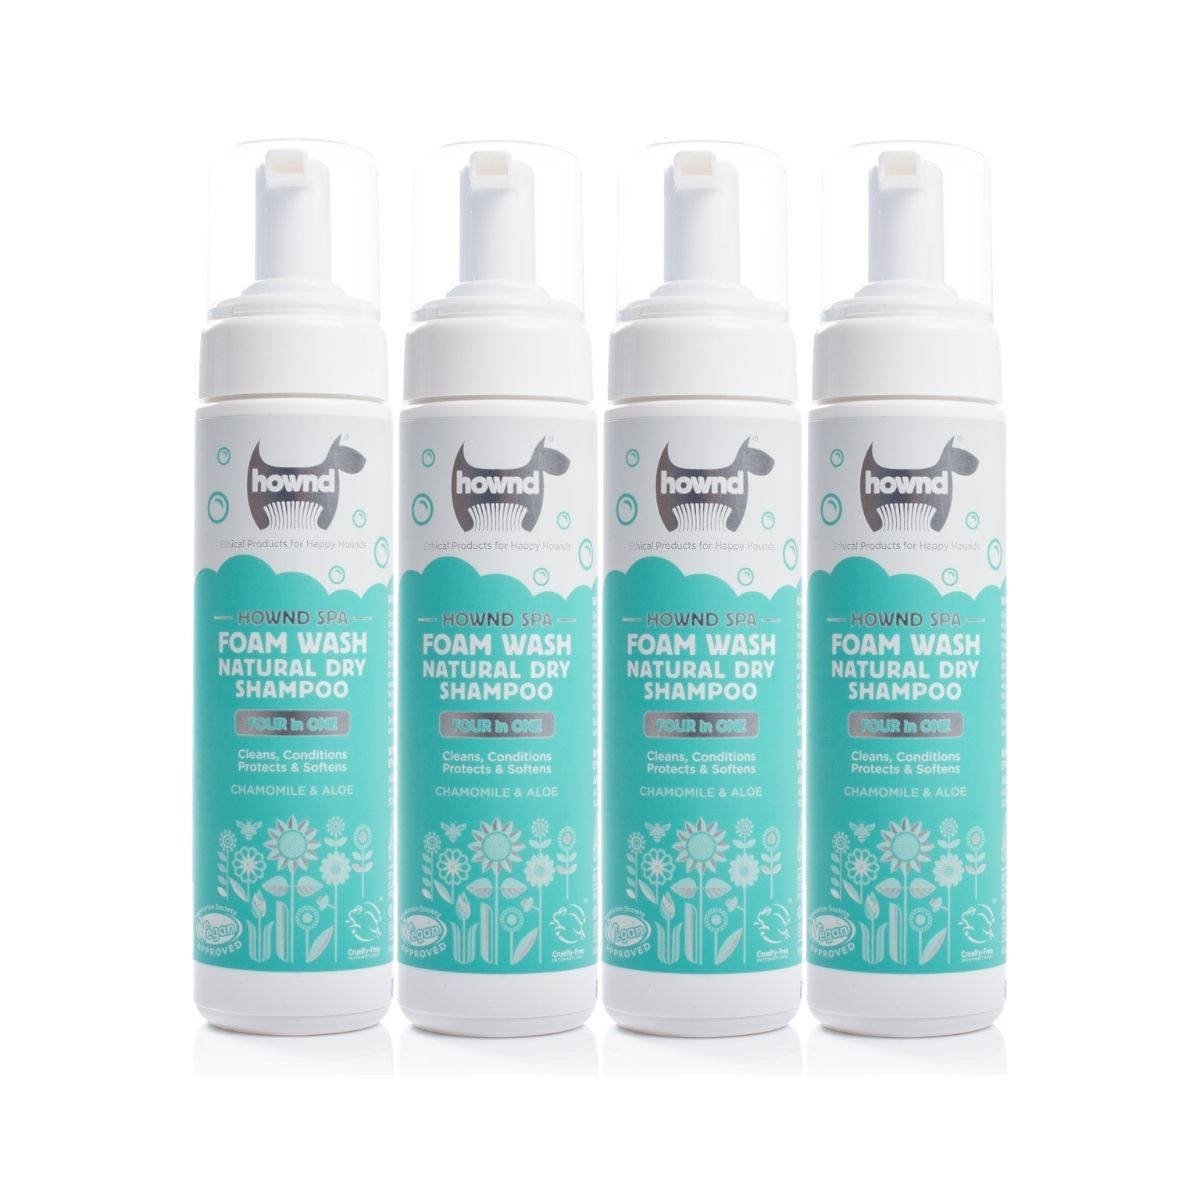 Foam Wash Natural Dry Shampoo (200ml) x 4 - Hownd